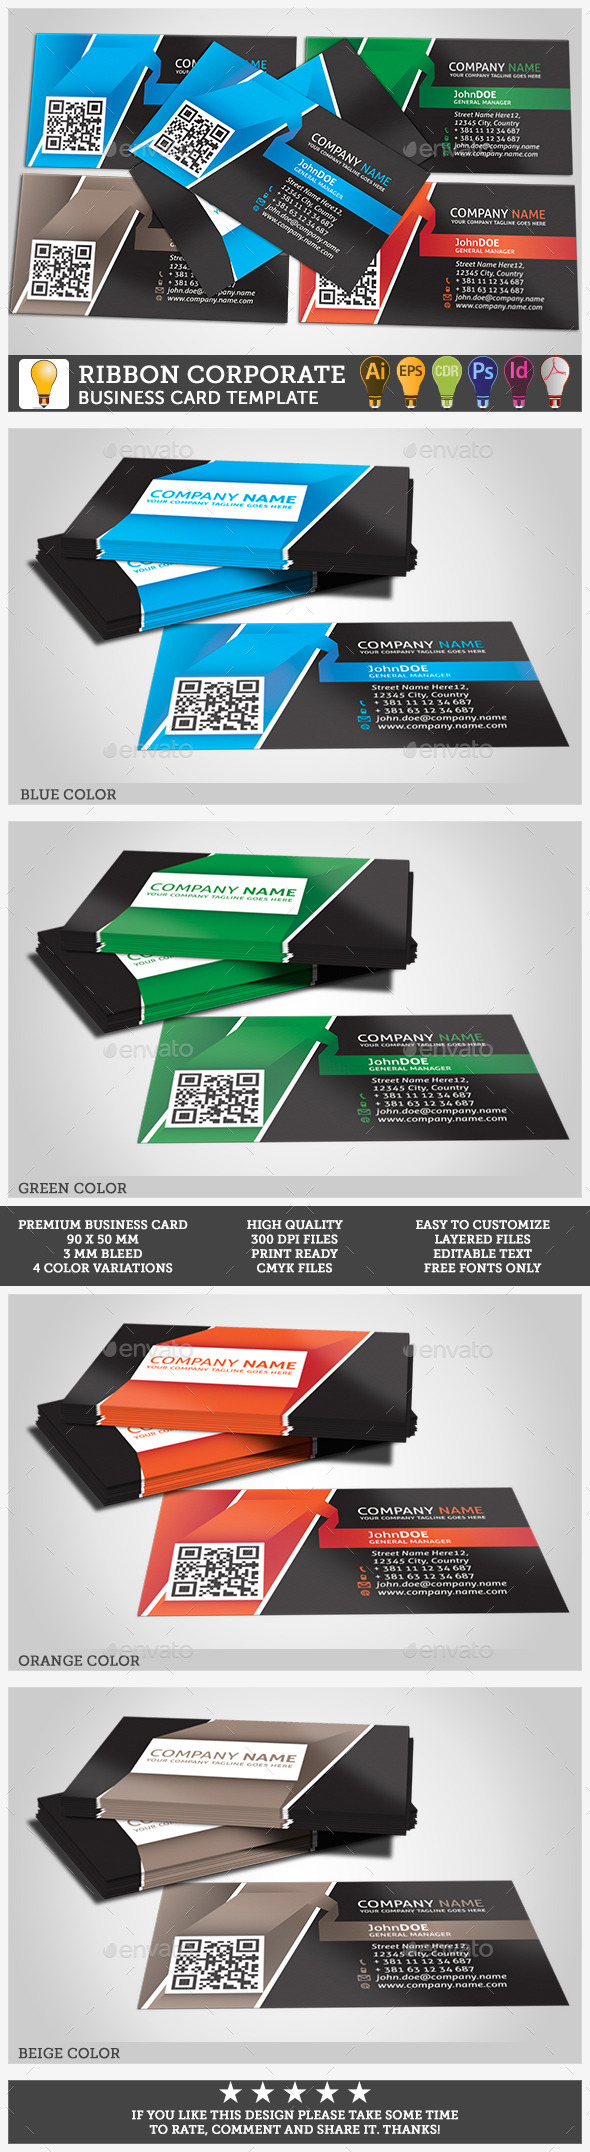 Corporate Business Card Ribbon Template - Corporate Business Cards